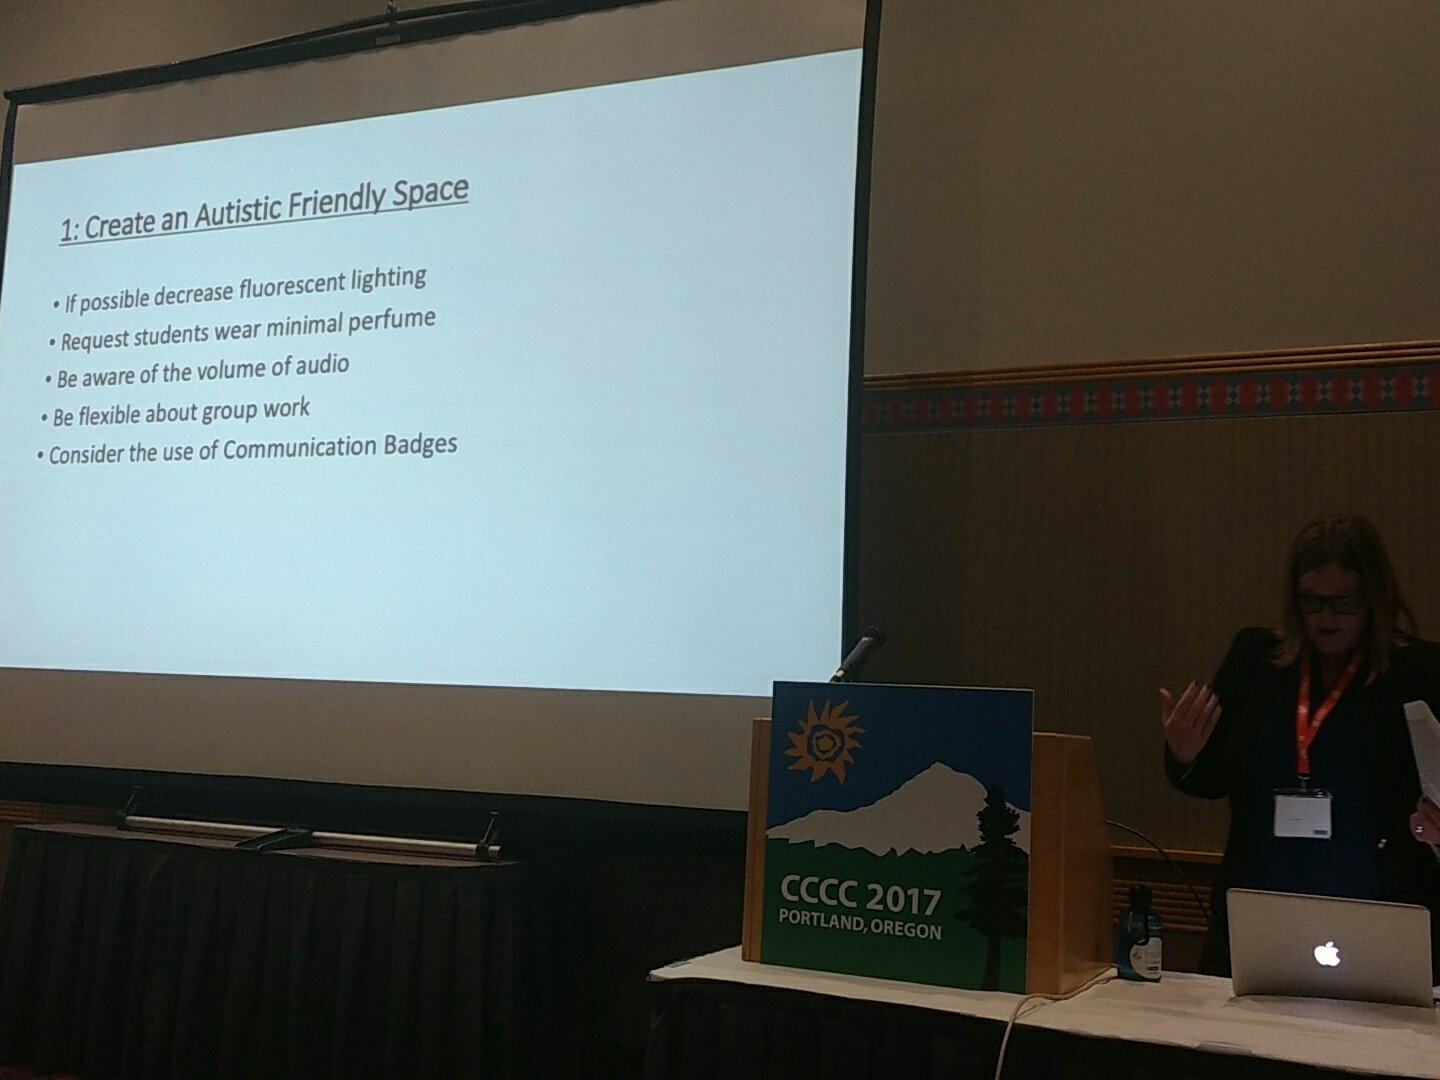 Practical advice for minimizing sensory overload: #4c17 #a28 https://t.co/NNOw65HmNJ